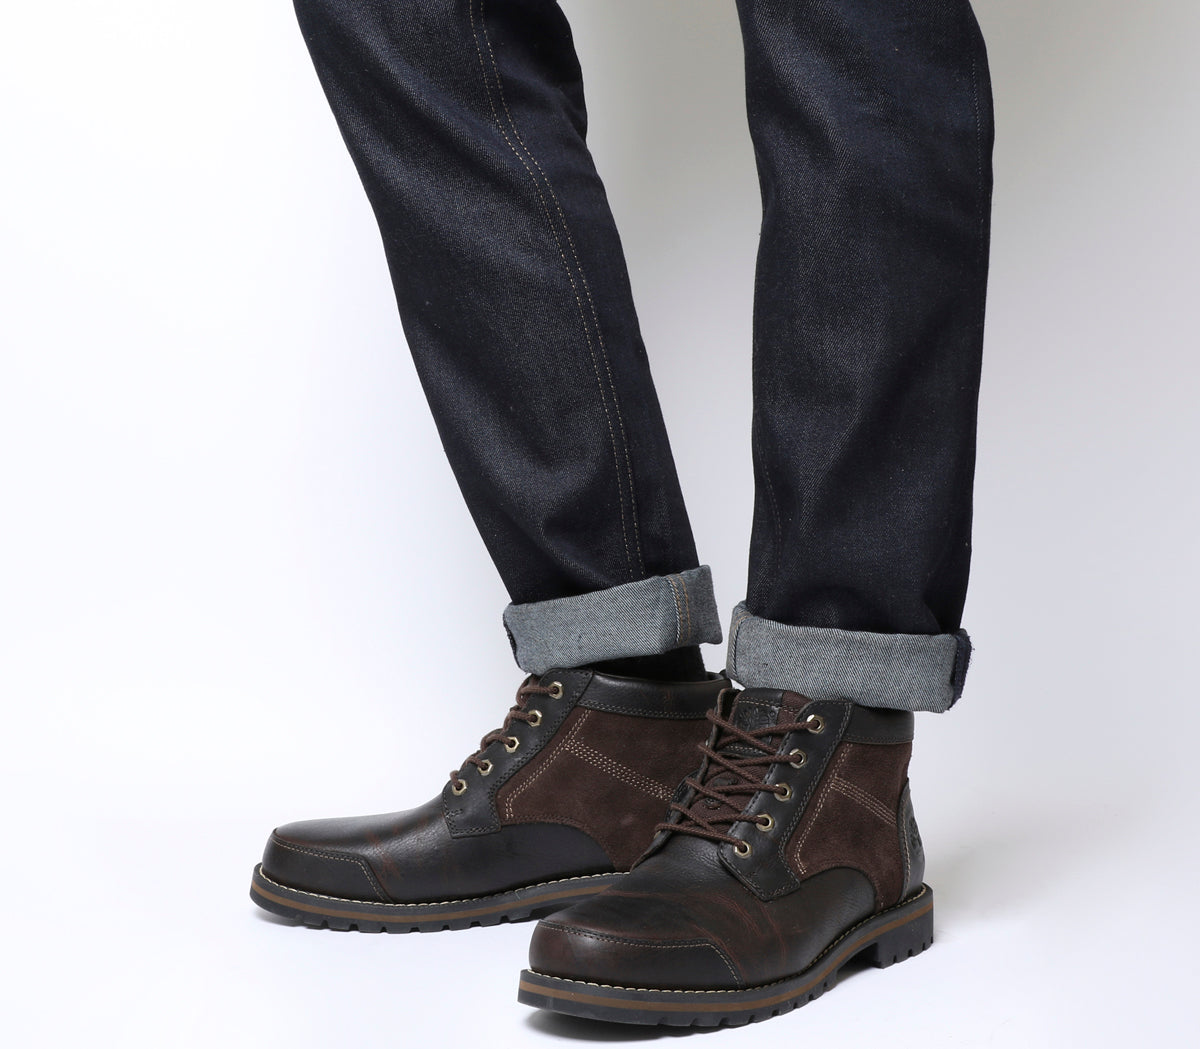 b940bf6f3362 Mens Timberland Larchmont Chukka Dark Brown Leather Boots – OFFCUTS SHOES  by OFFICE